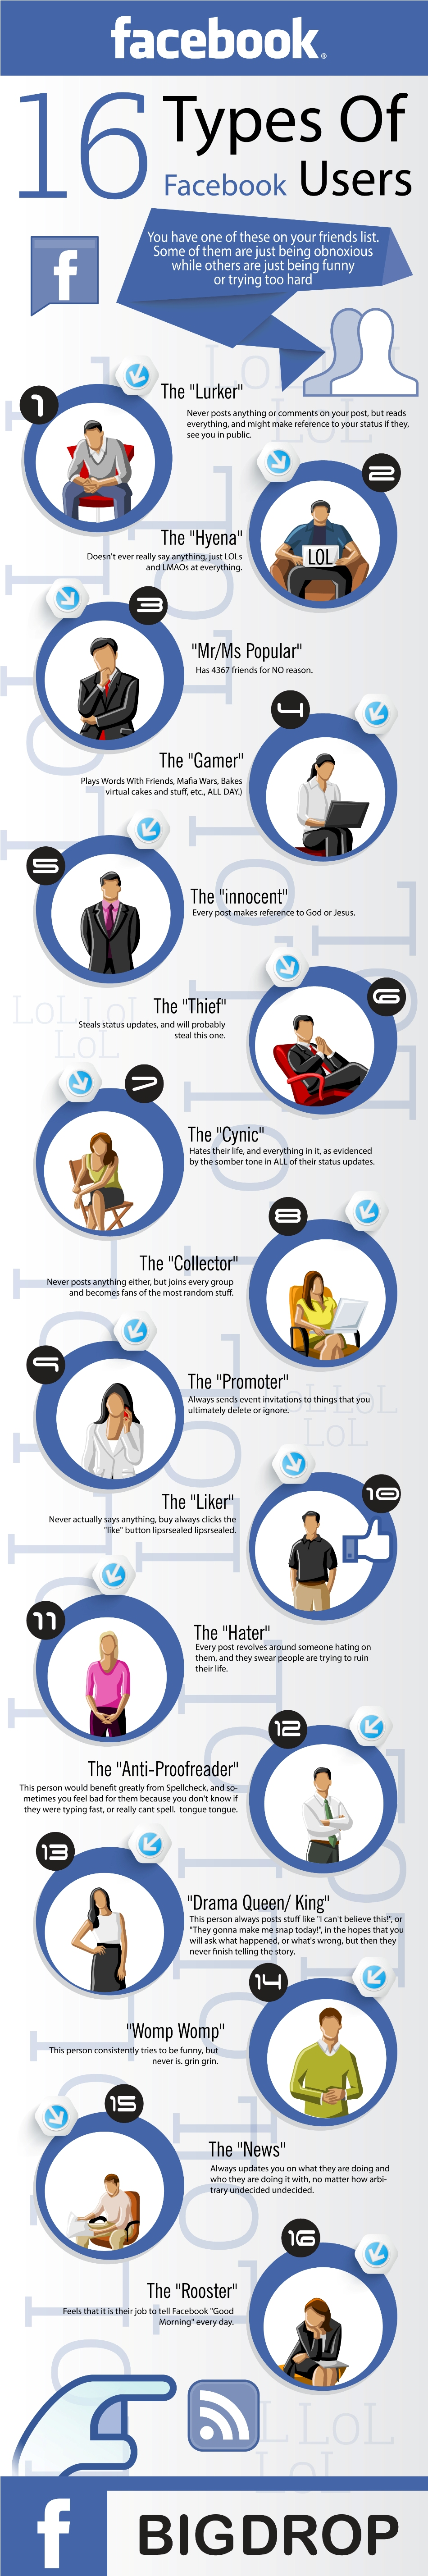 16-types-of-facebook-users_5283a15fef89b